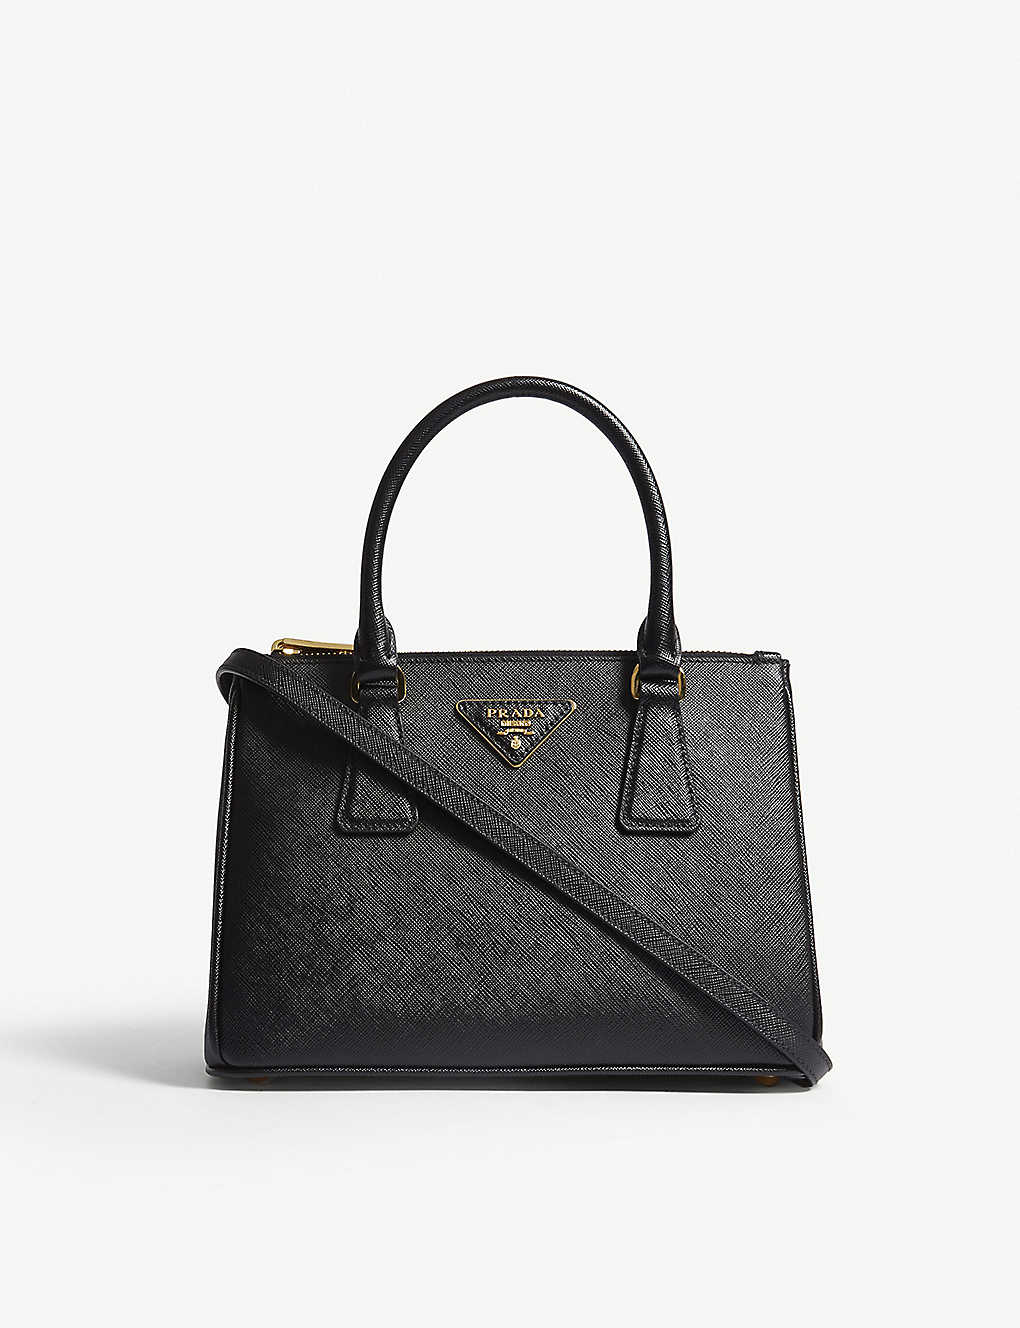 36e5fb37812bb6 PRADA - Galleria leather mini shoulder bag | Selfridges.com